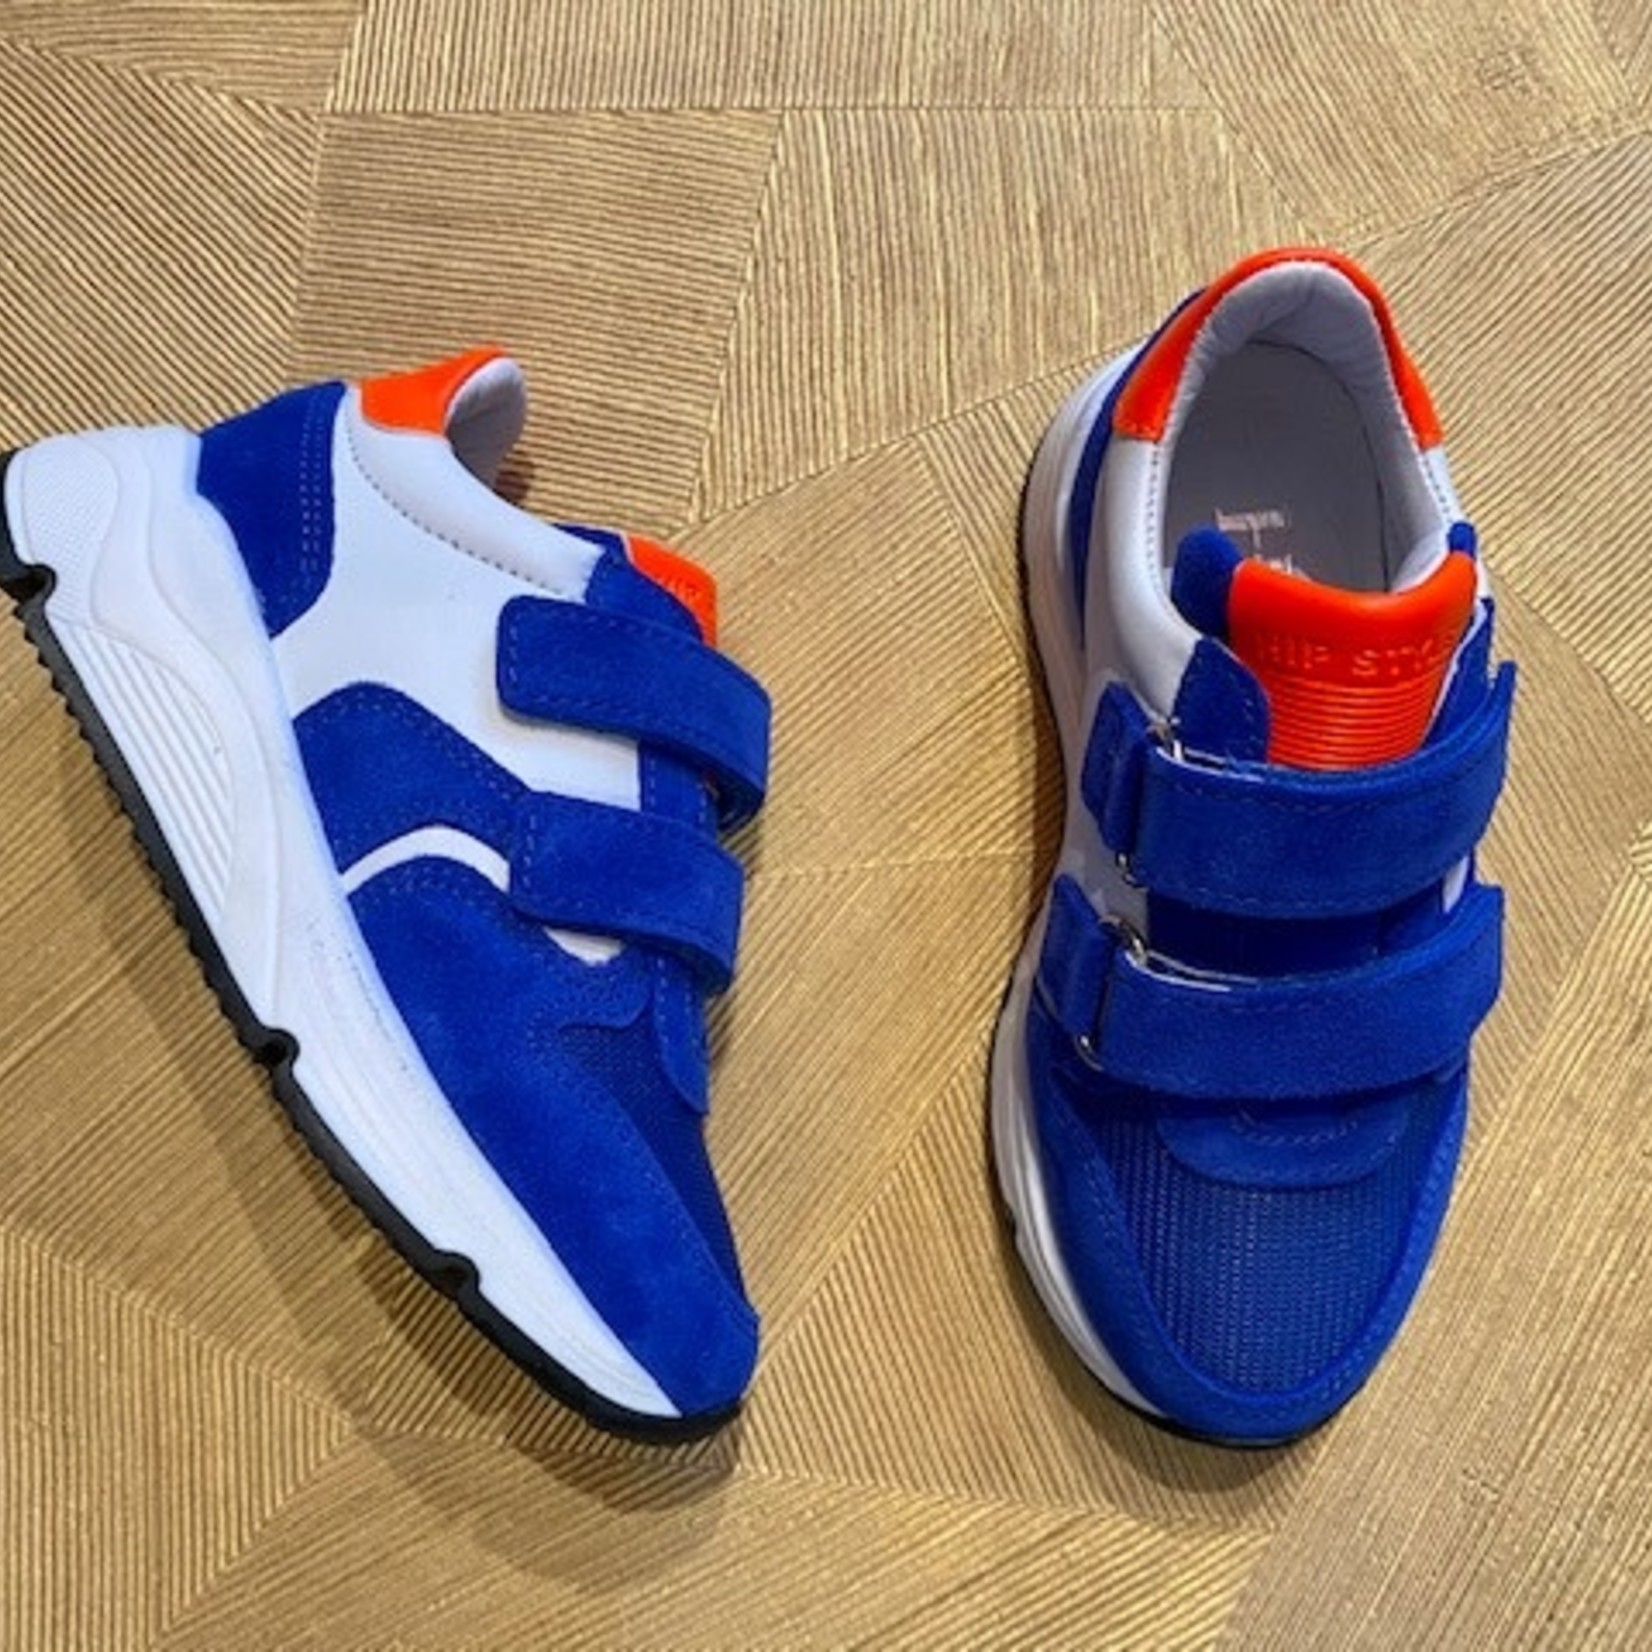 HIP HIP NEW runner kb COBALT